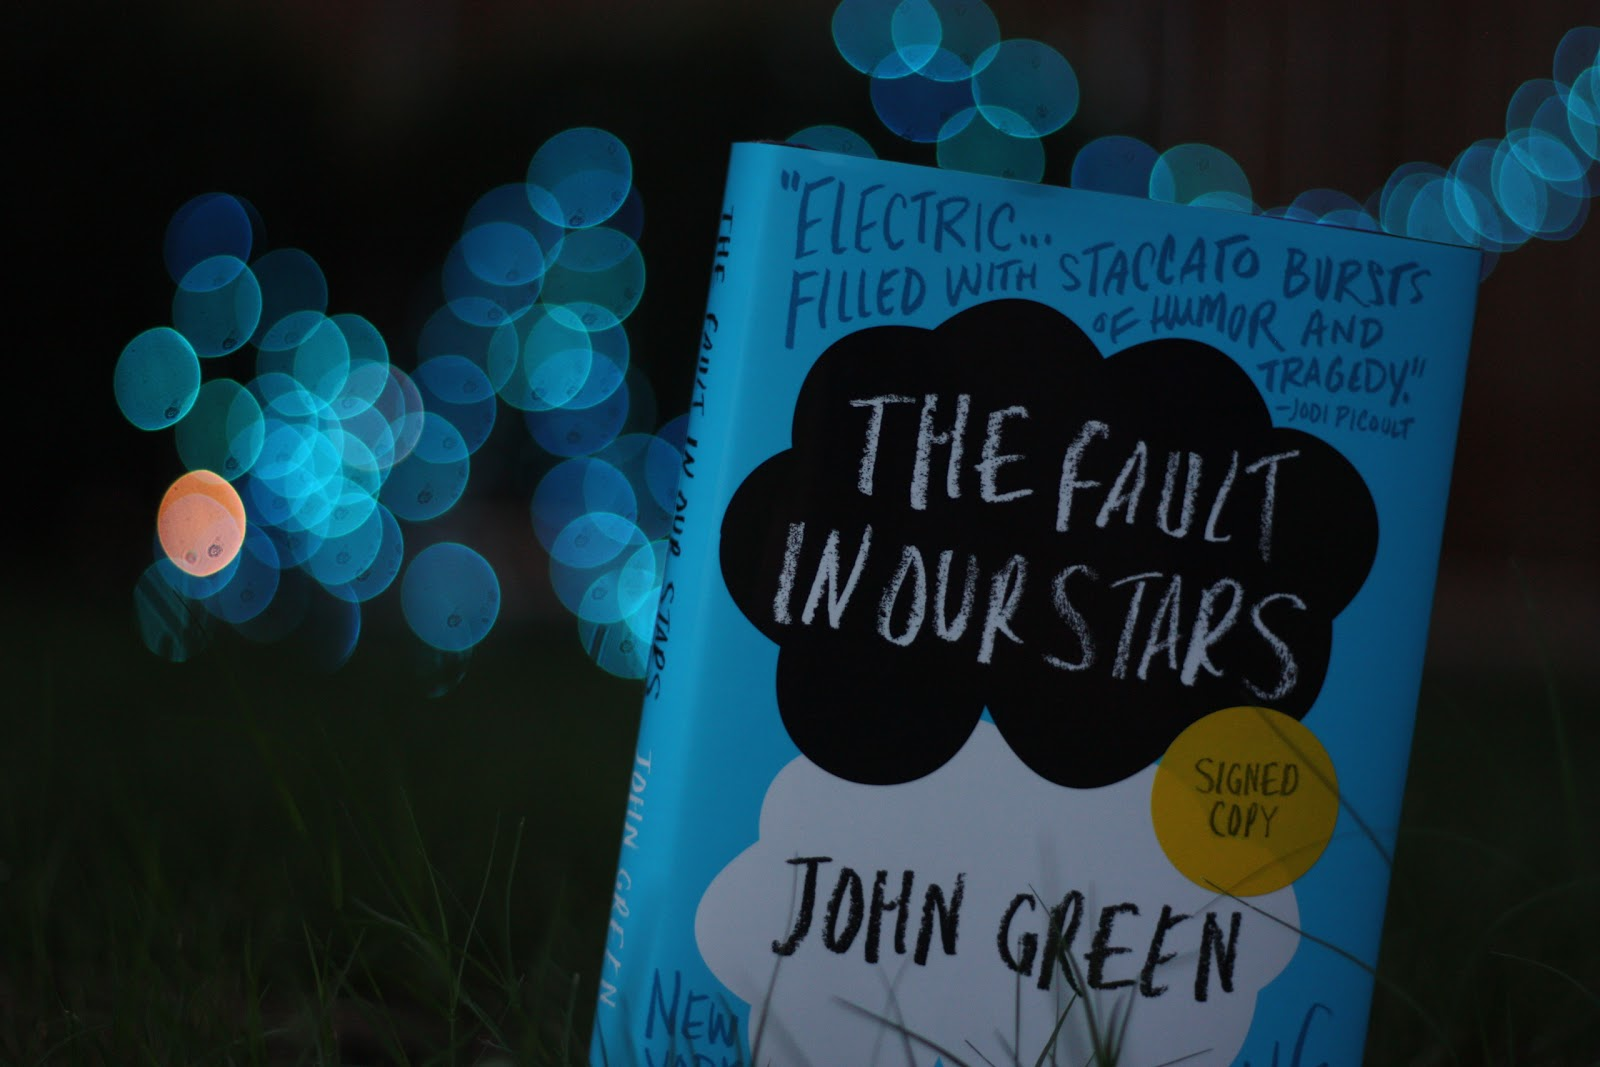 A short review of the fault in our stars a novel by john green